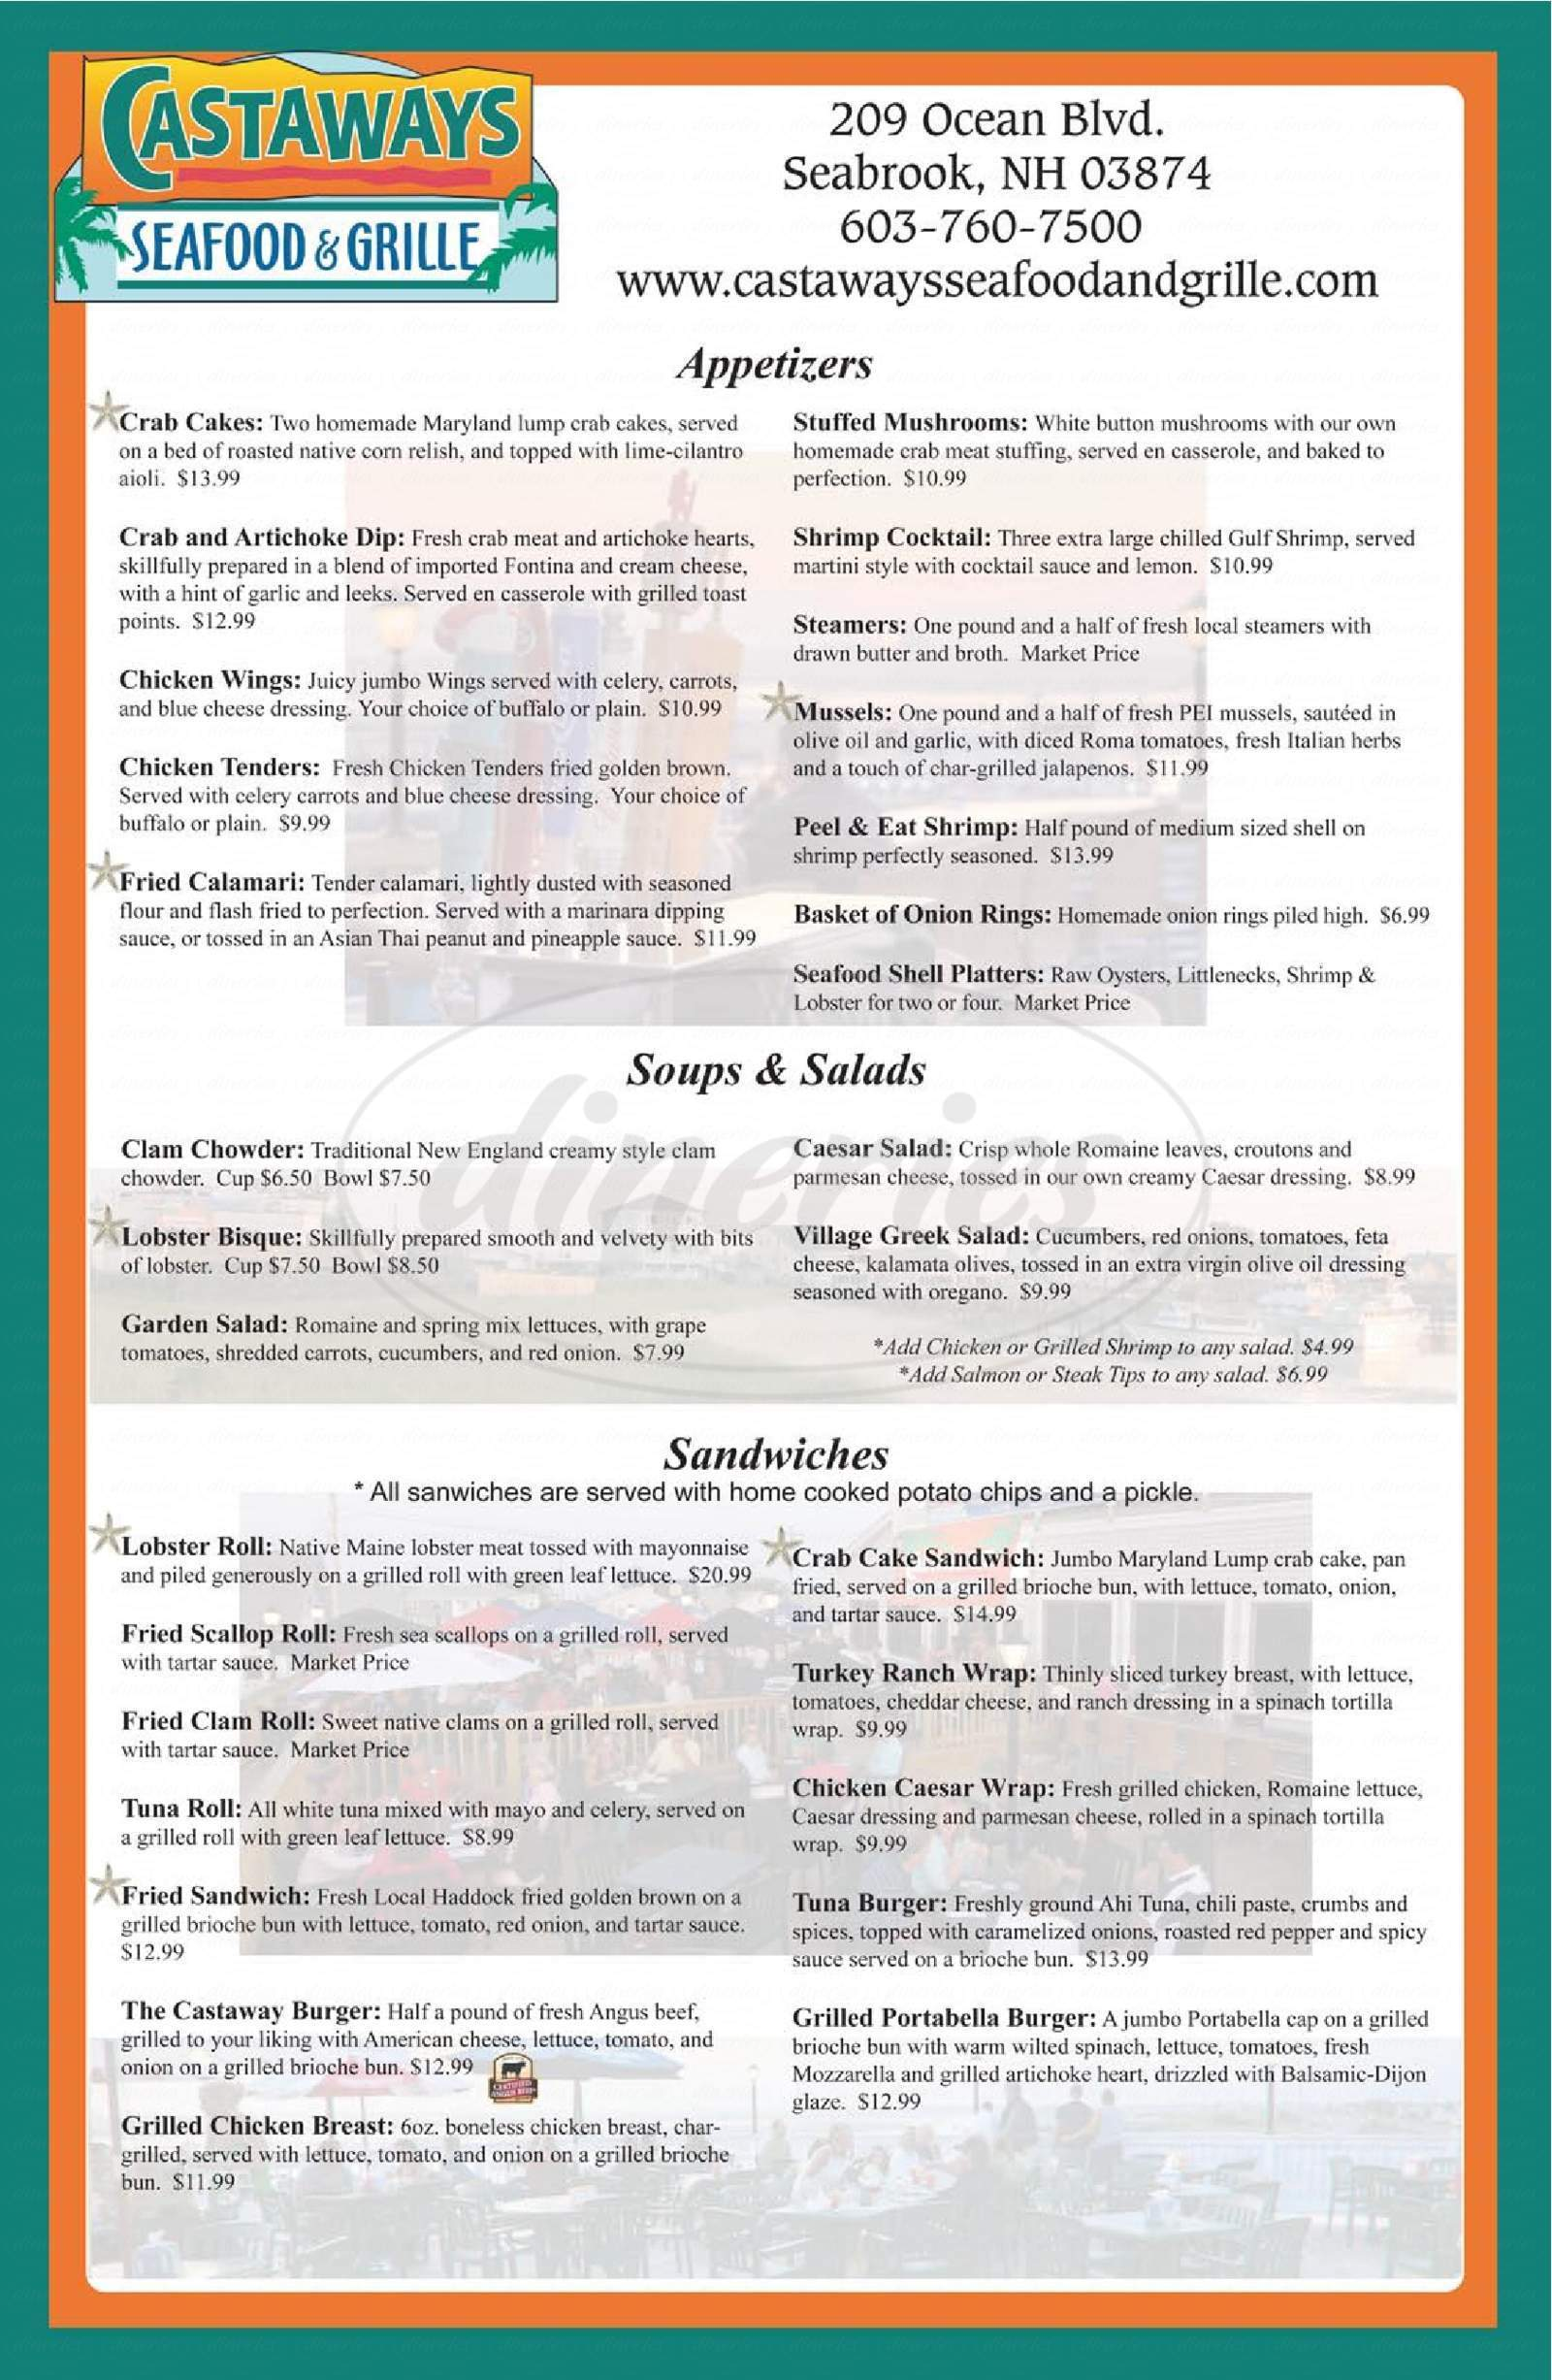 menu for Castaways Seafood and Grill